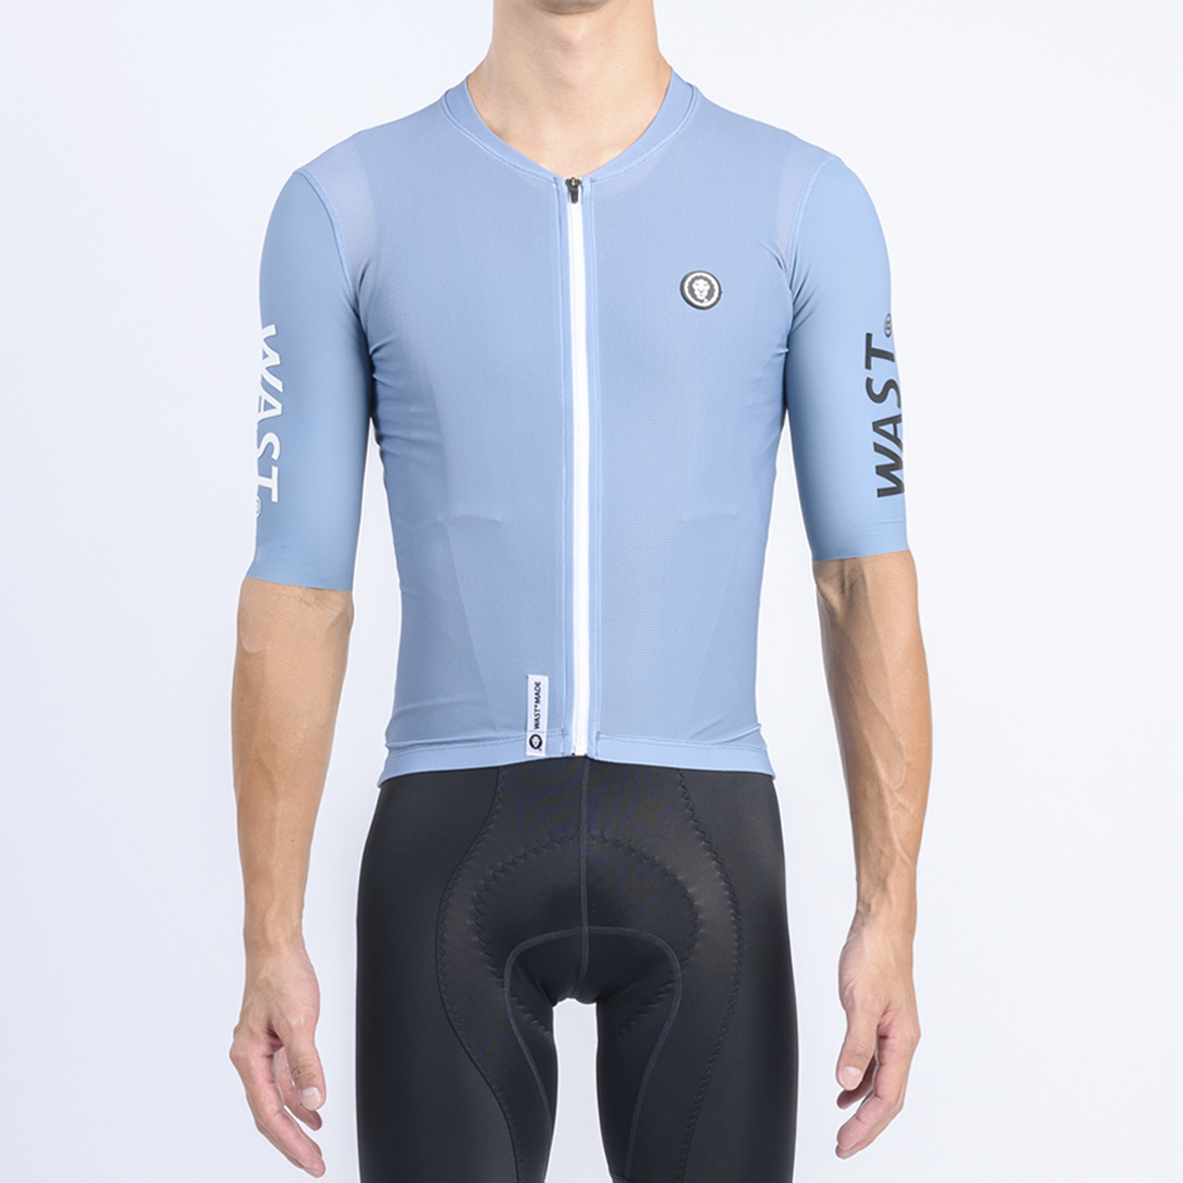 /archive/product/item/images/28a-w9-wbbproaeroshortjersey-paleblue-m-f.png